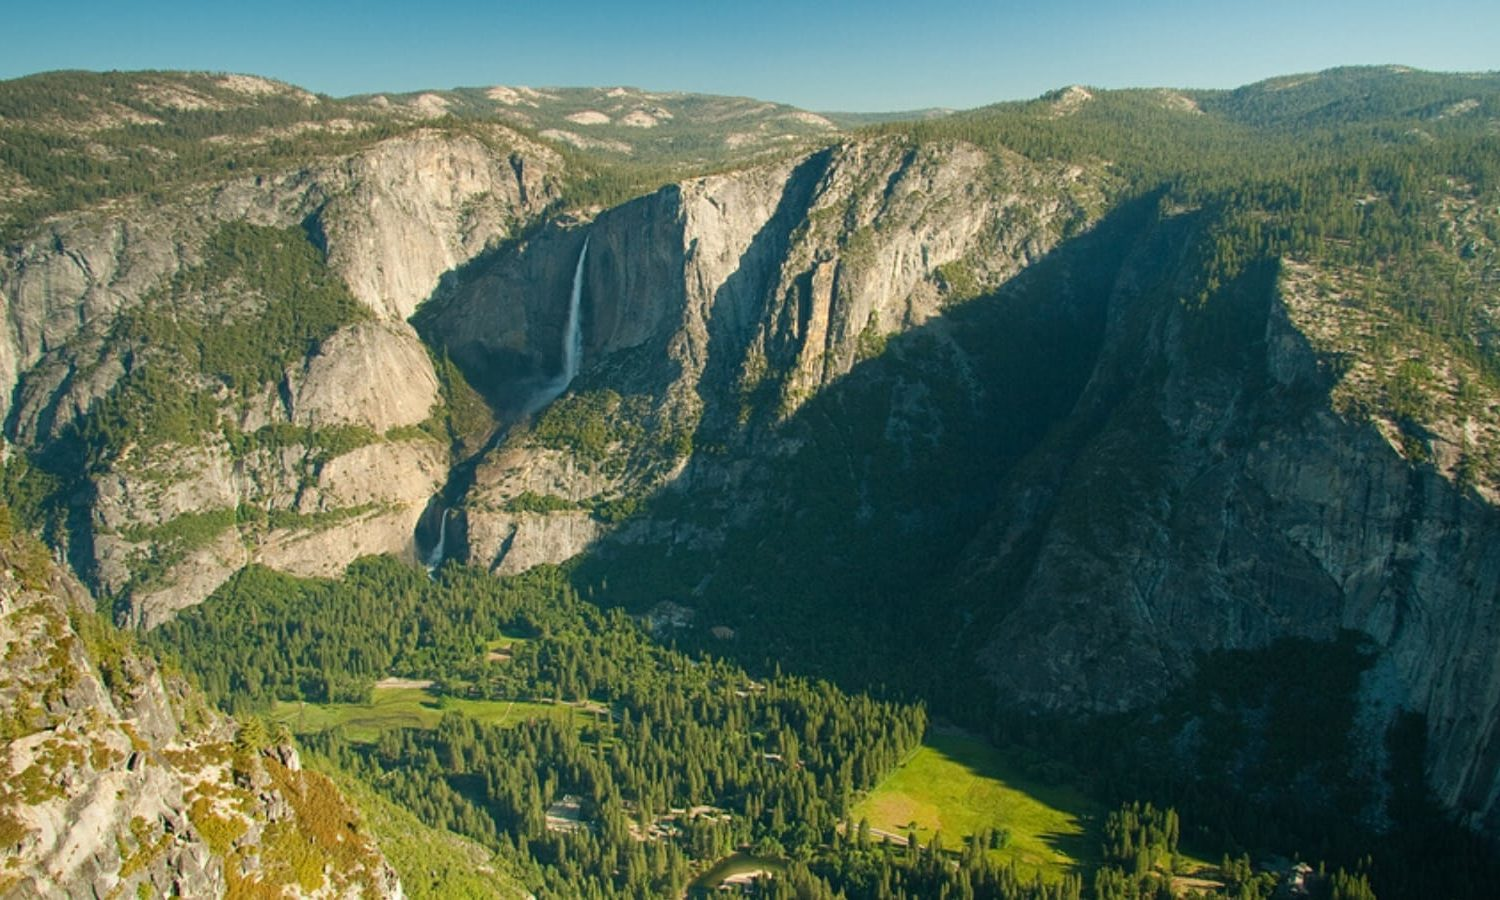 GyPSy Guide Audio Driving Tour App Yosemite